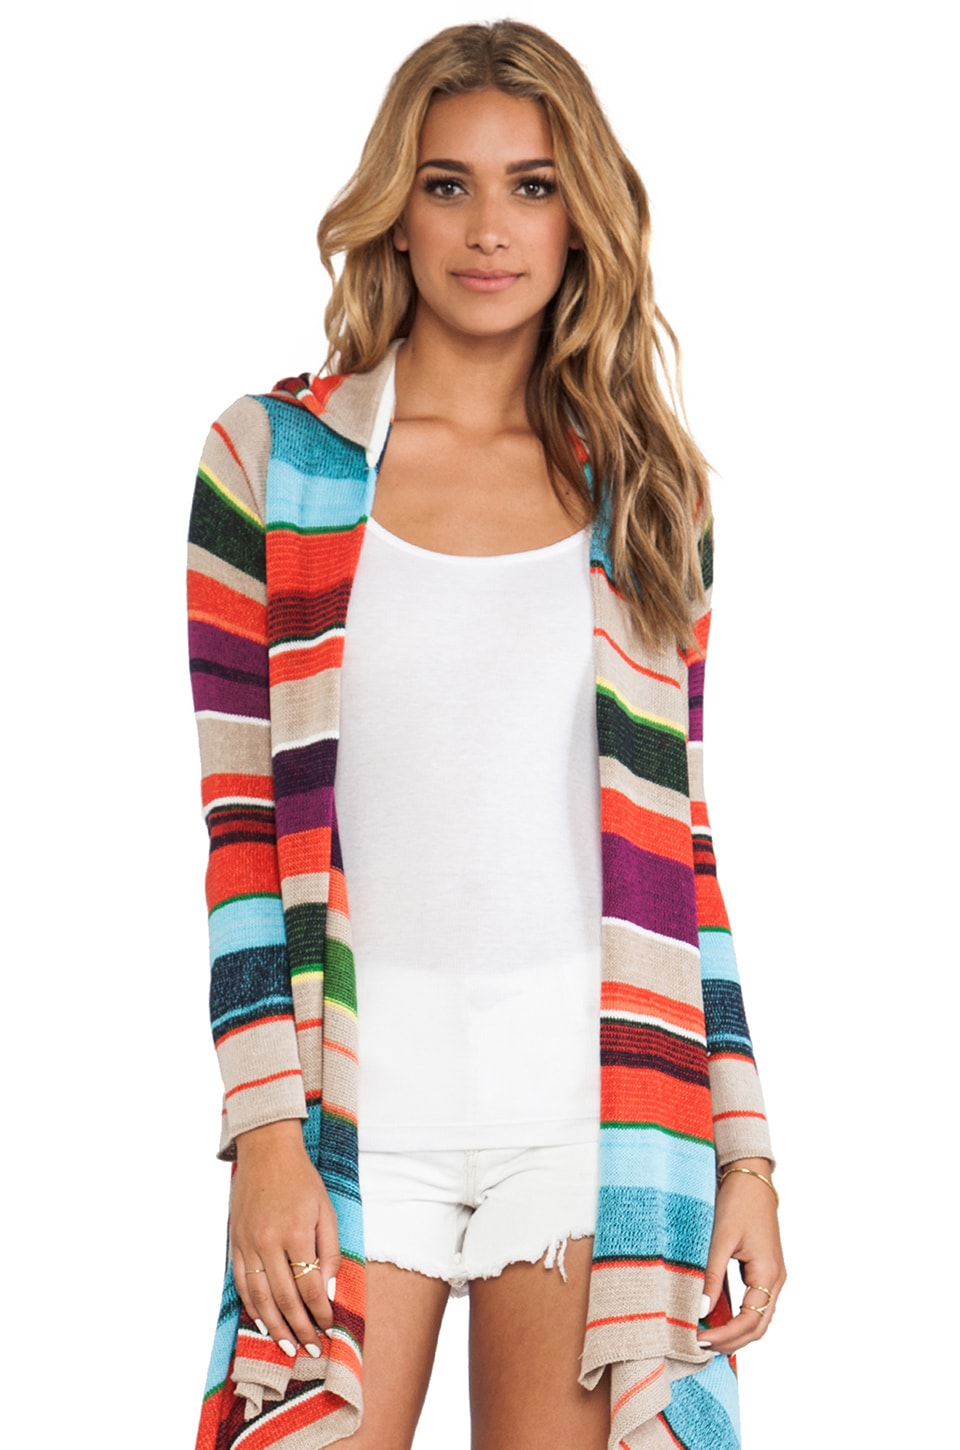 Goddis Linsey Wrap Sweater in River Rock